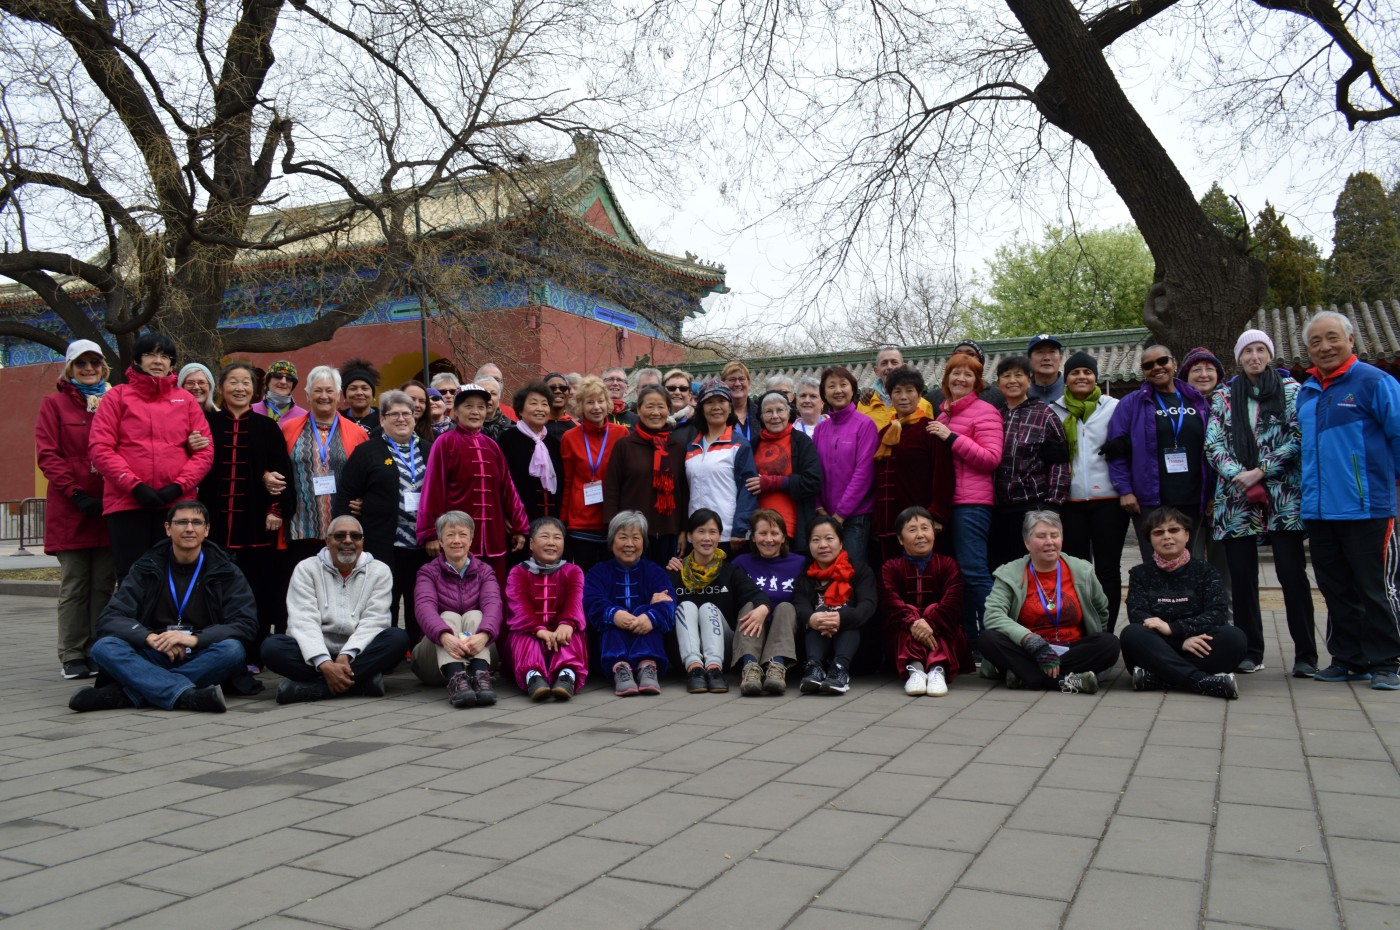 With a local Tai Chi community group, Temple of Heaven, Beijing